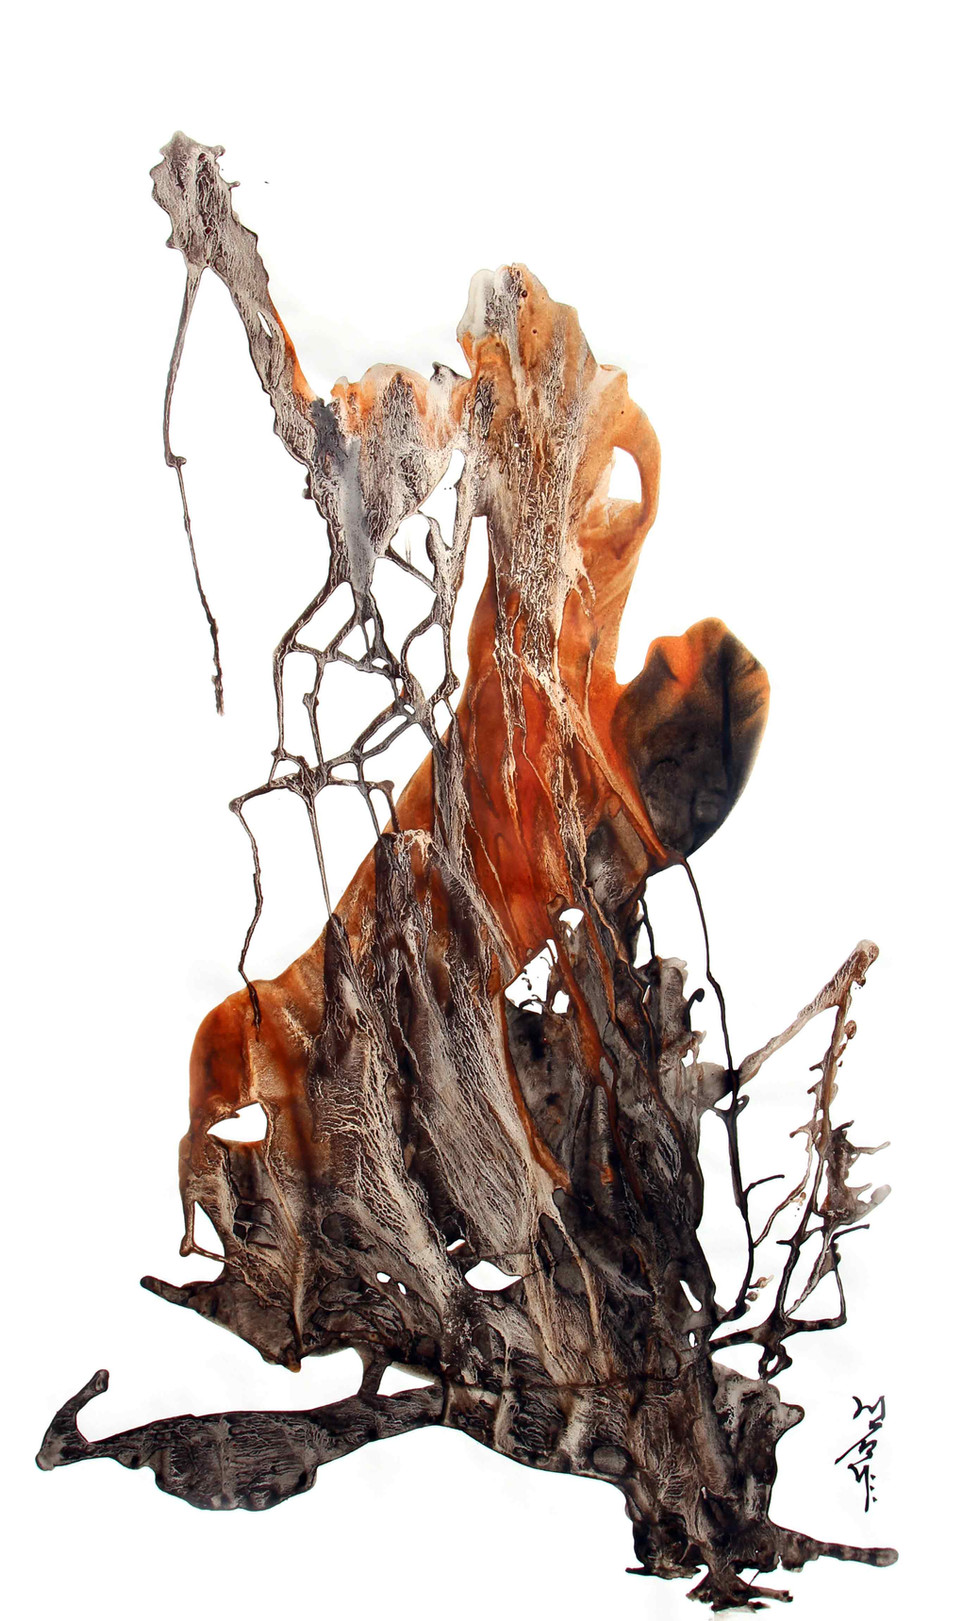 ROOT 27, 2015